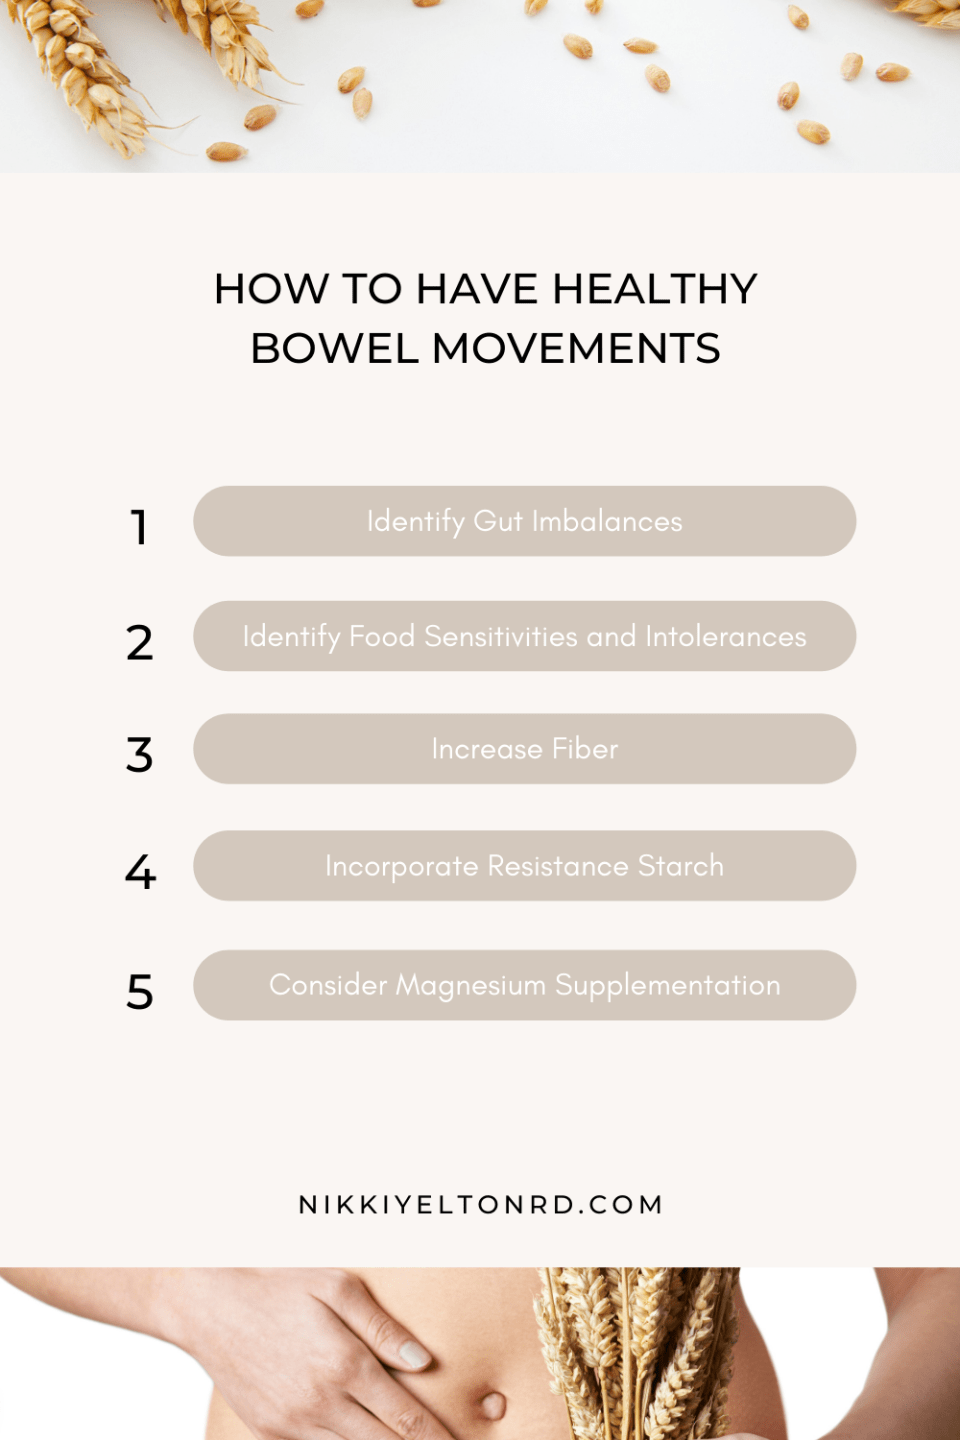 Suggestions on how to have healthy poop